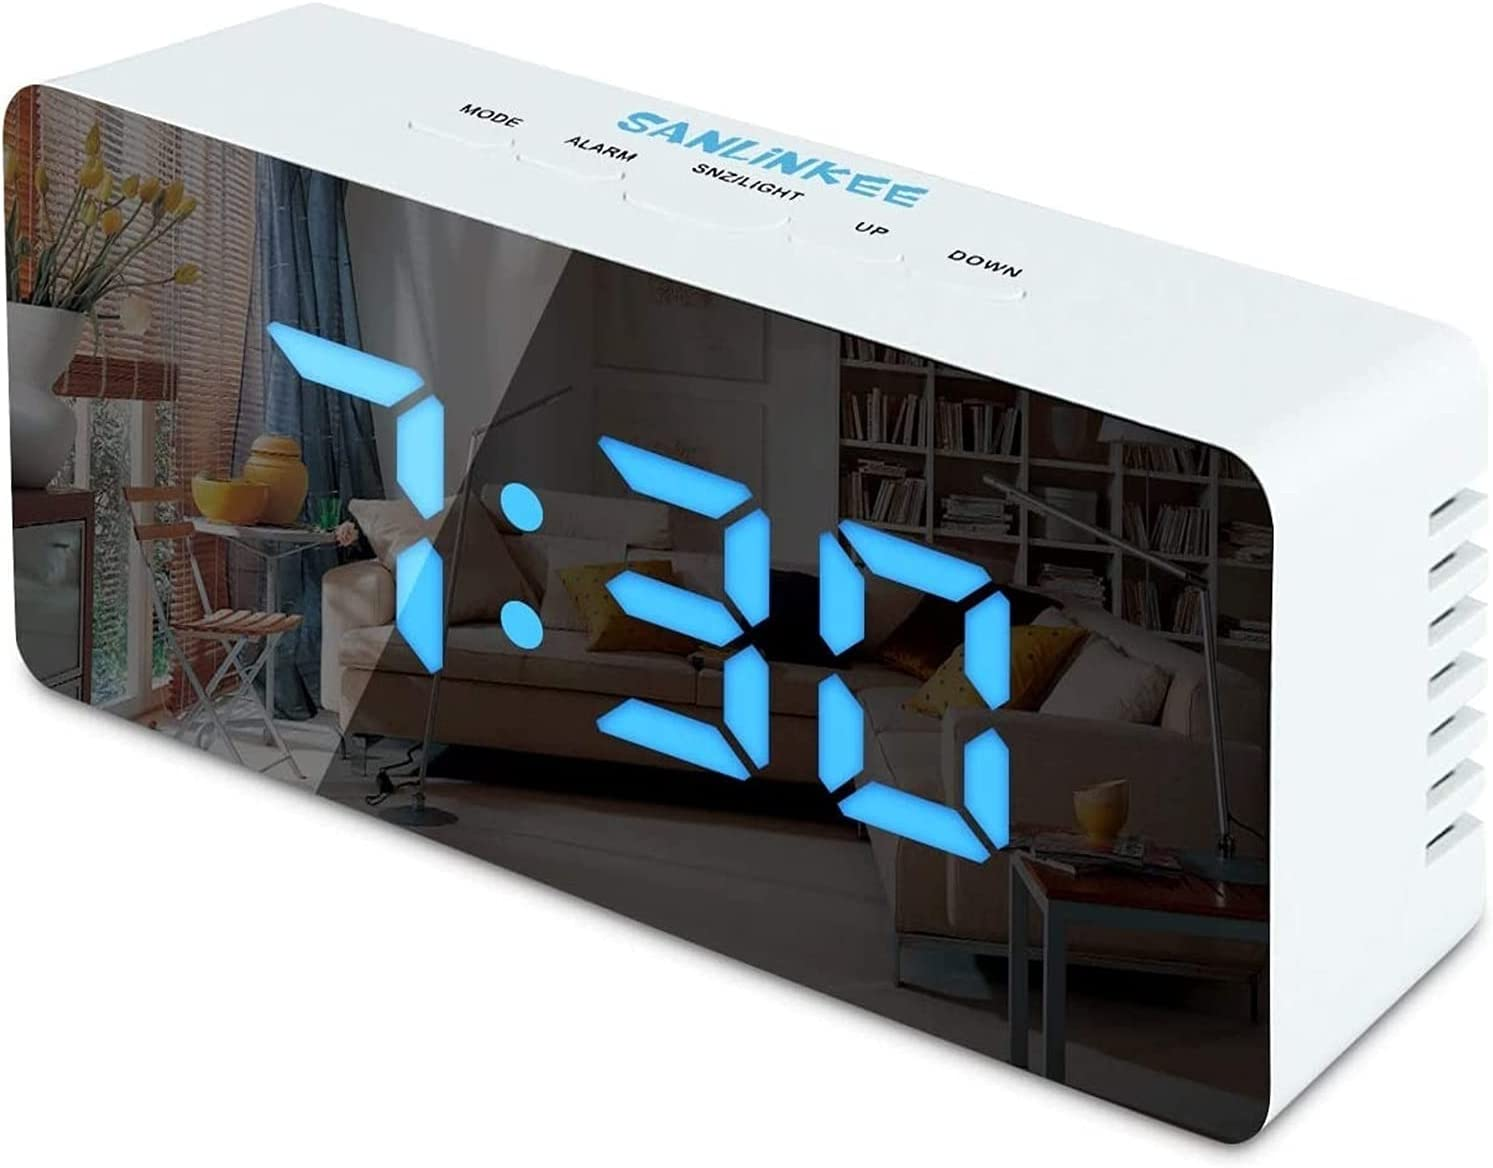 Digital Popular Alarm Clock Bedside Clocks Fees free!! with Snooze Tempe Time